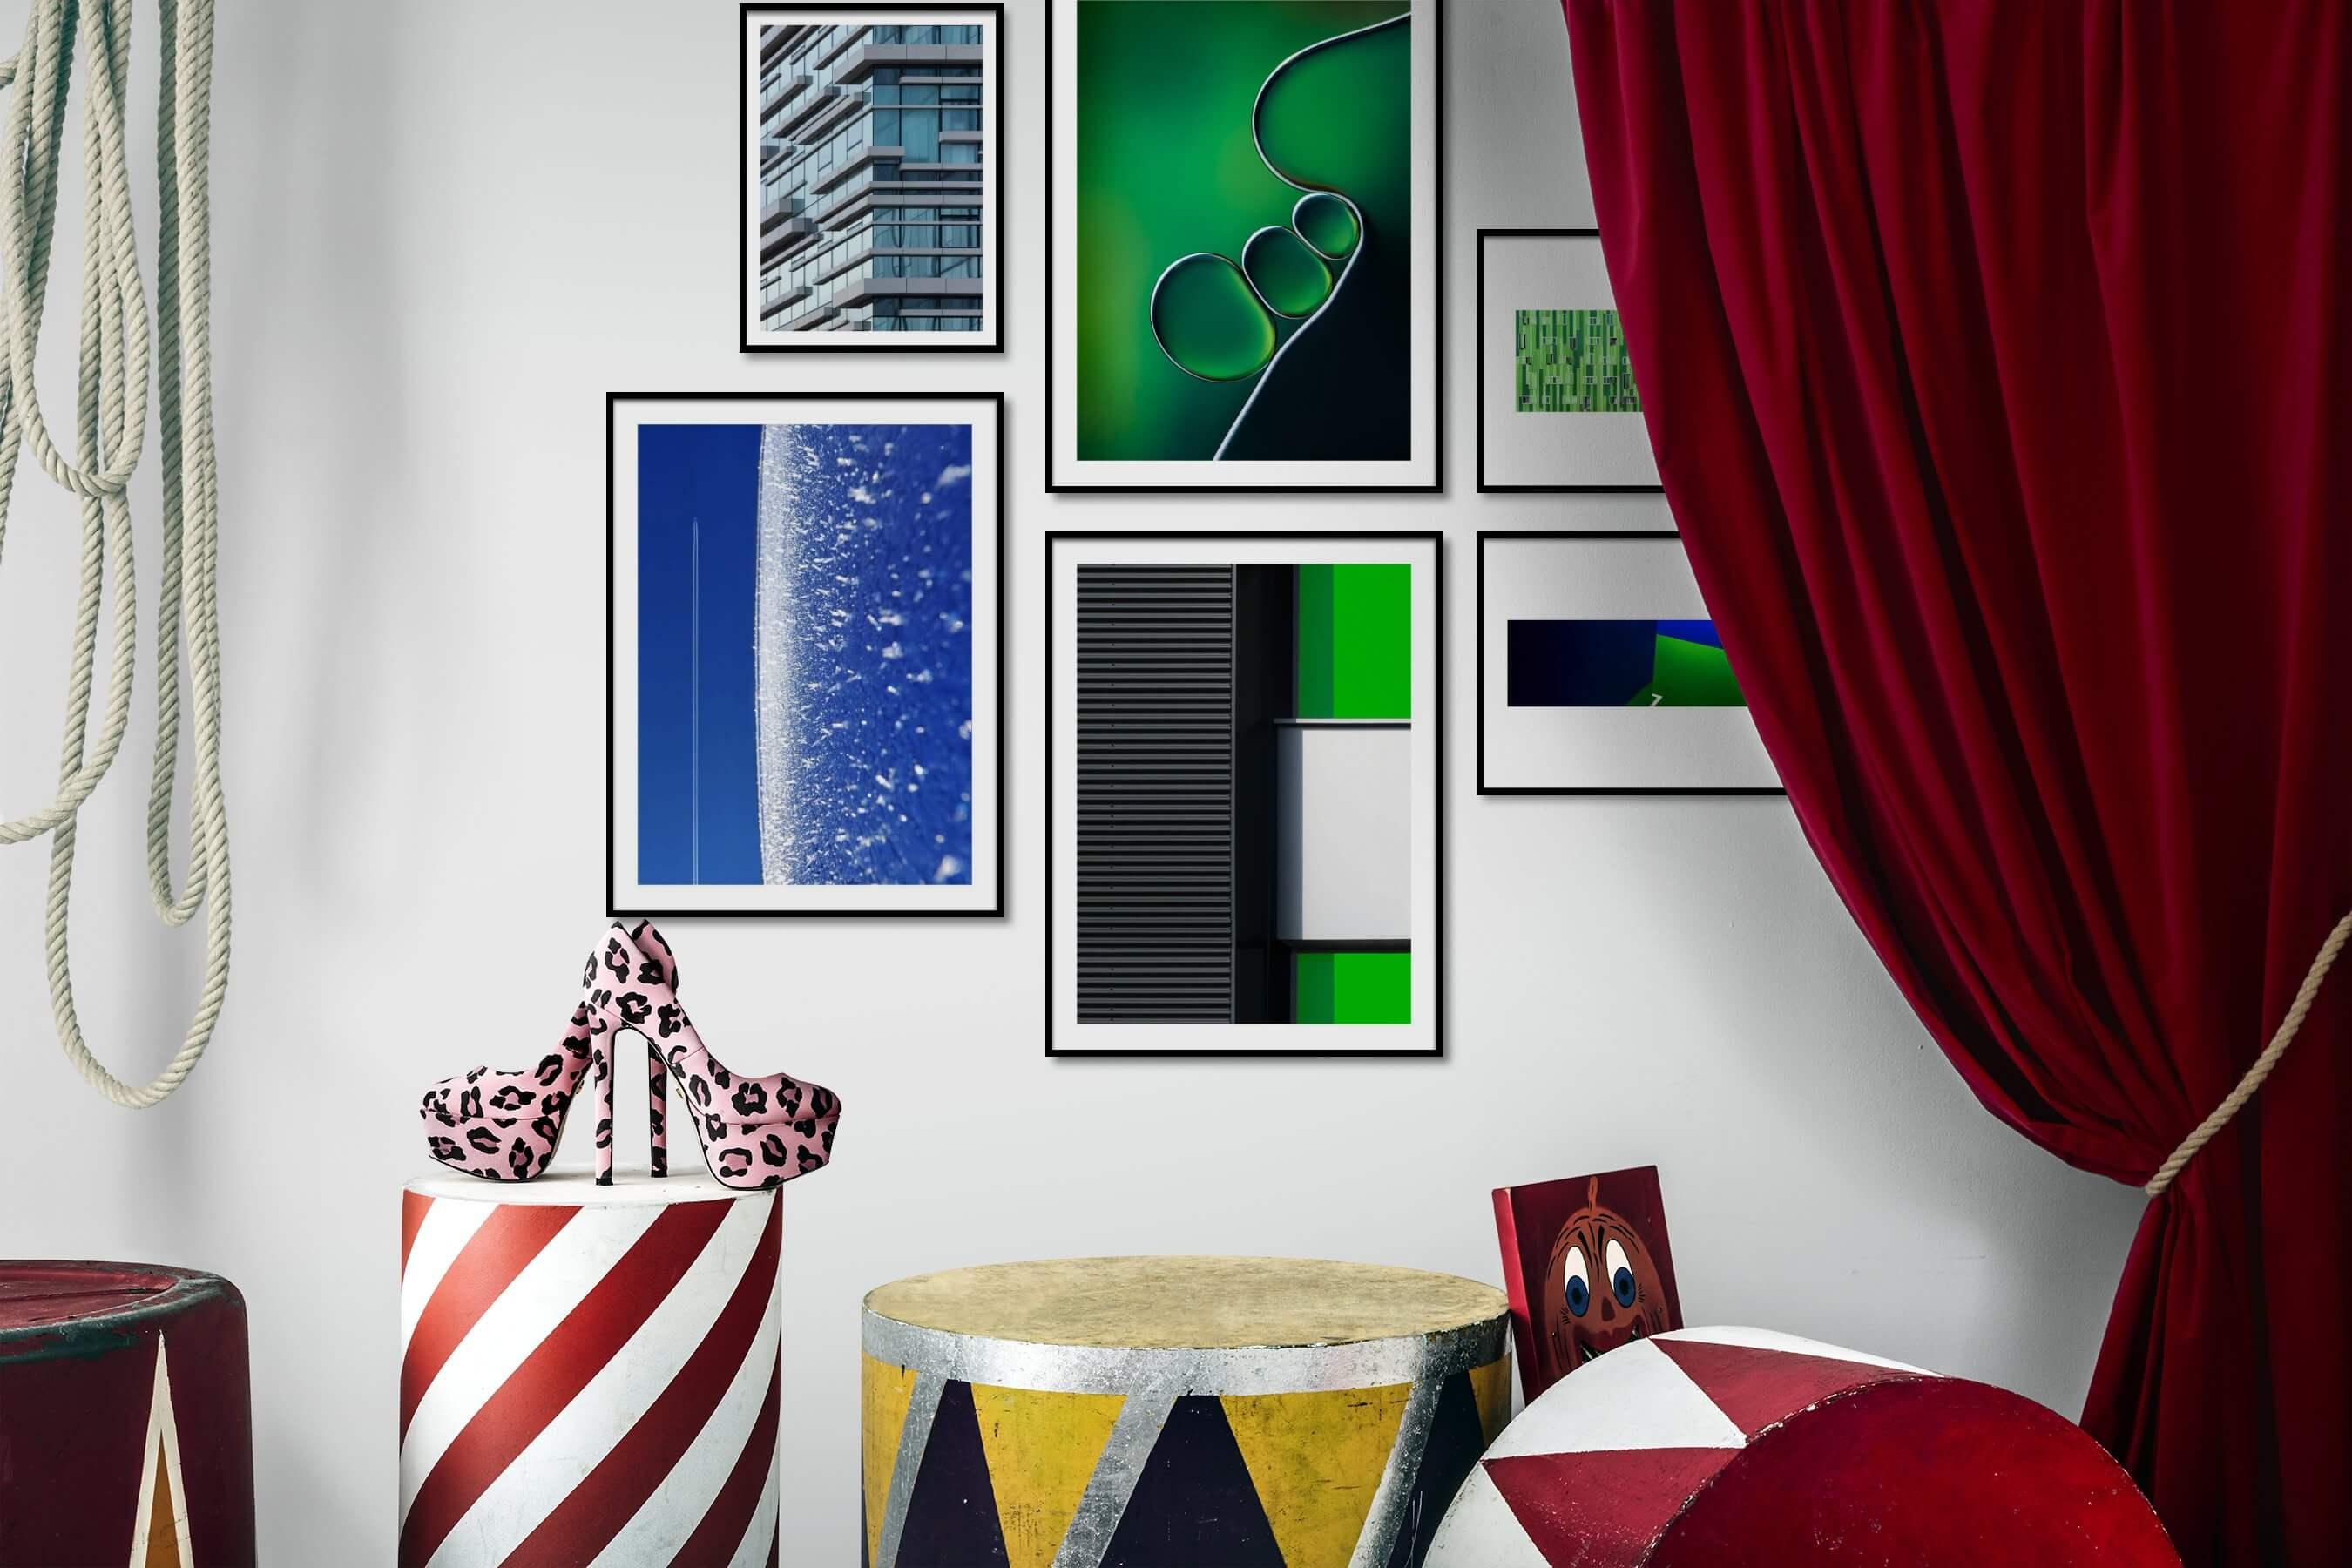 Gallery wall idea with six framed pictures arranged on a wall depicting For the Maximalist, City Life, For the Minimalist, and For the Moderate